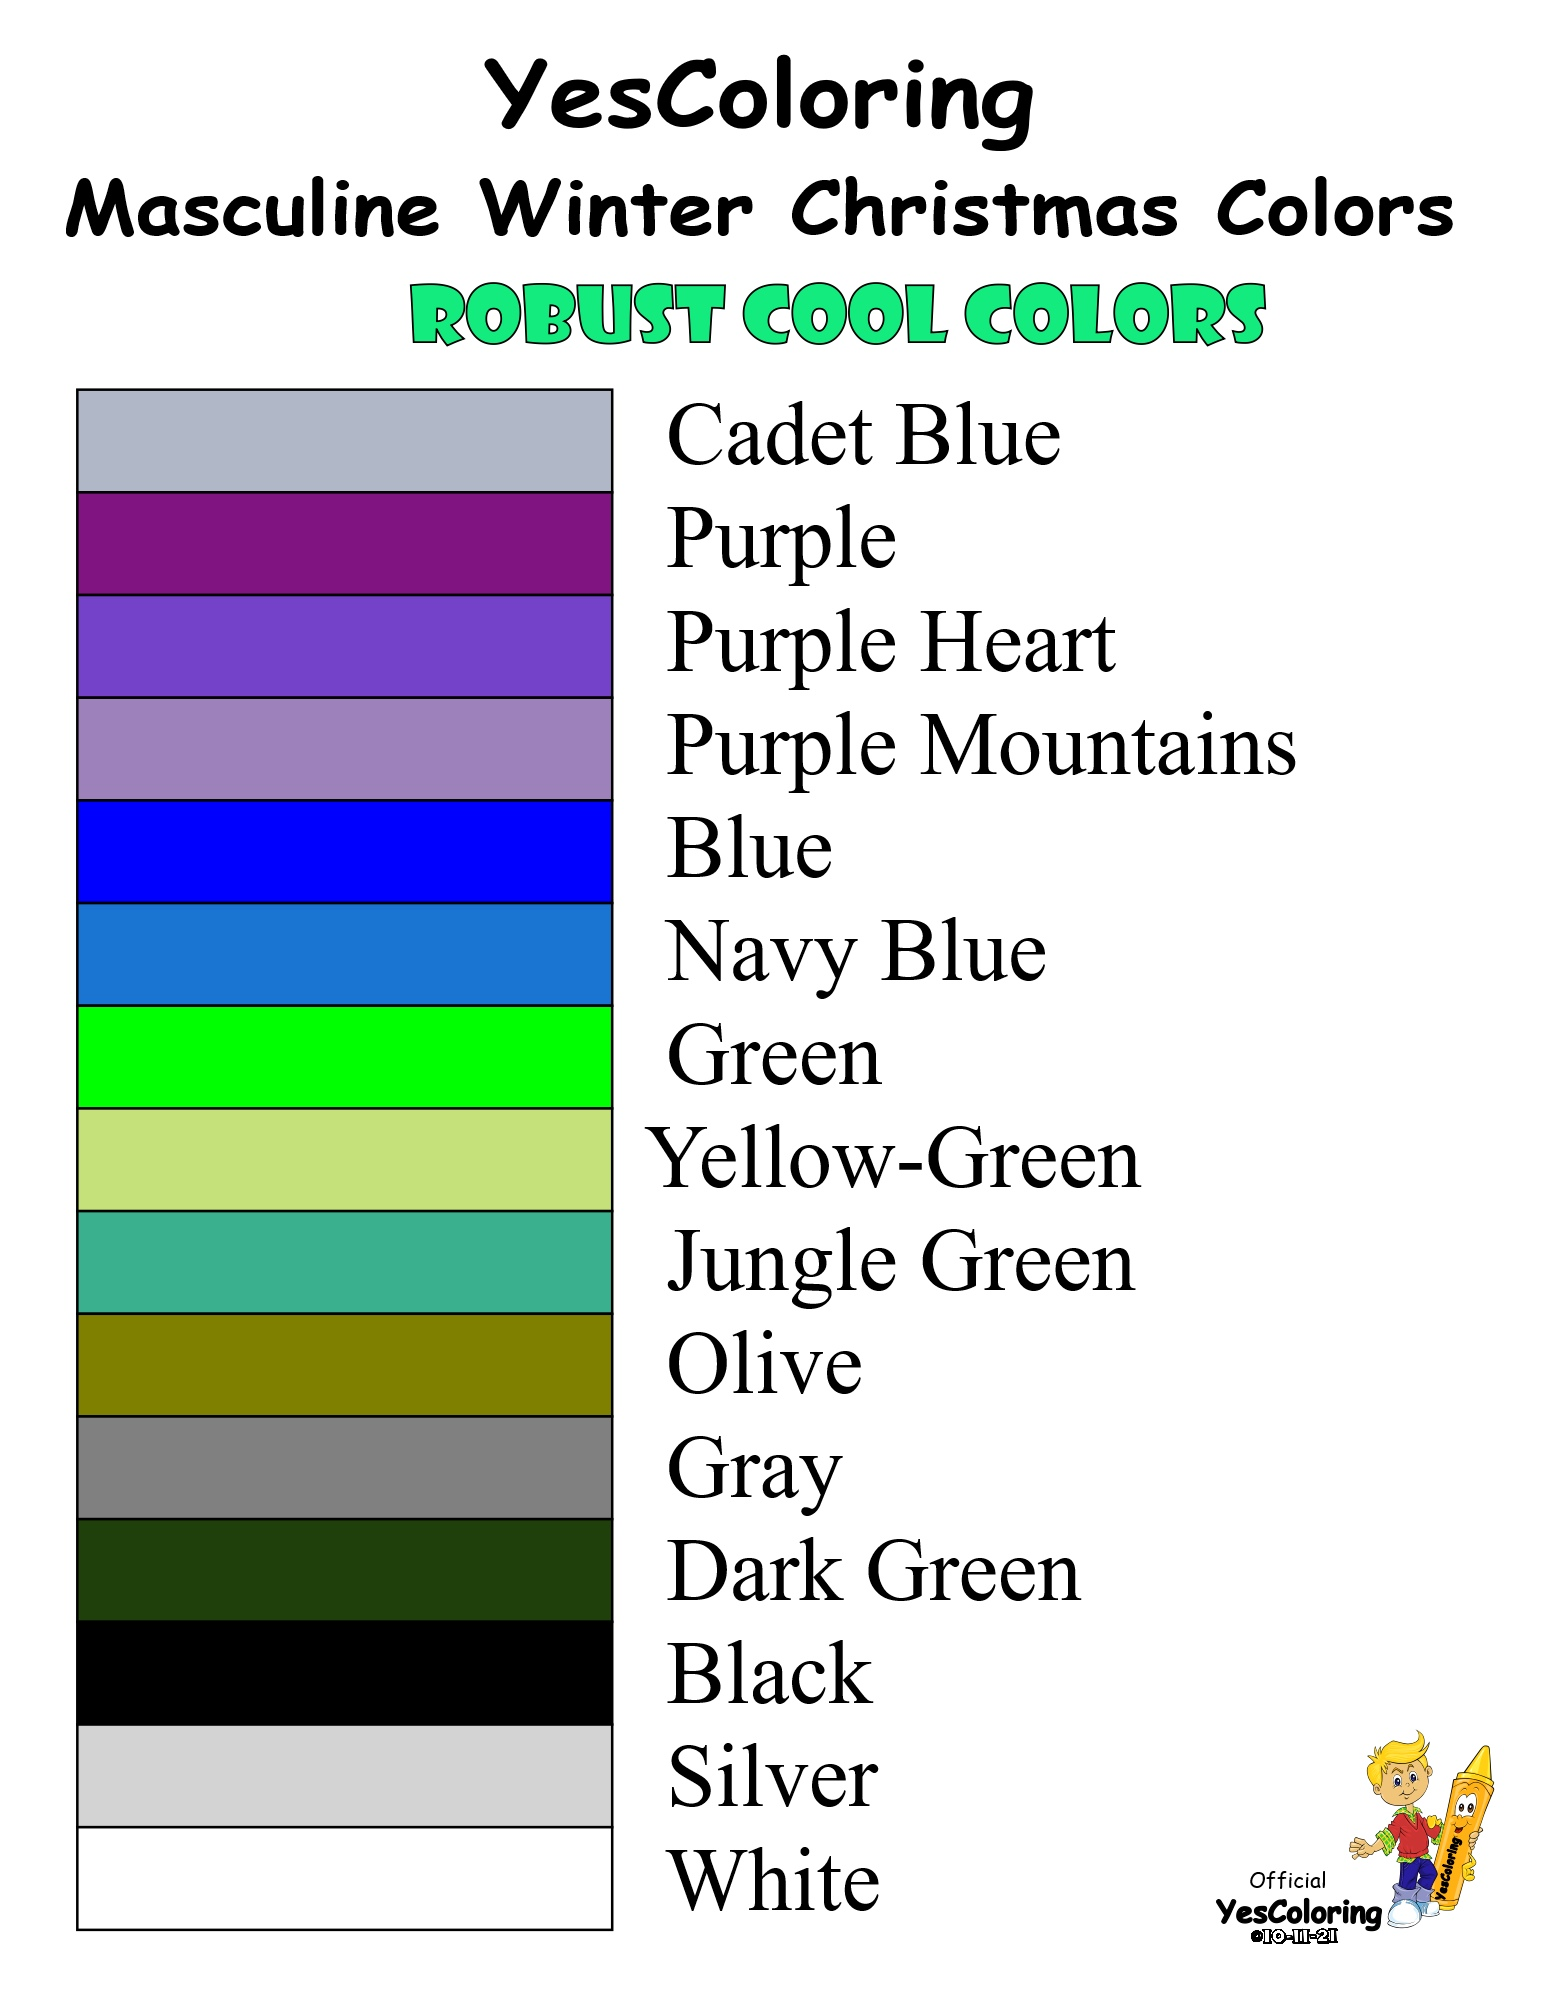 YesColoring 15 Masculine Cool Winter Christmas Colors Chart at YesColoring